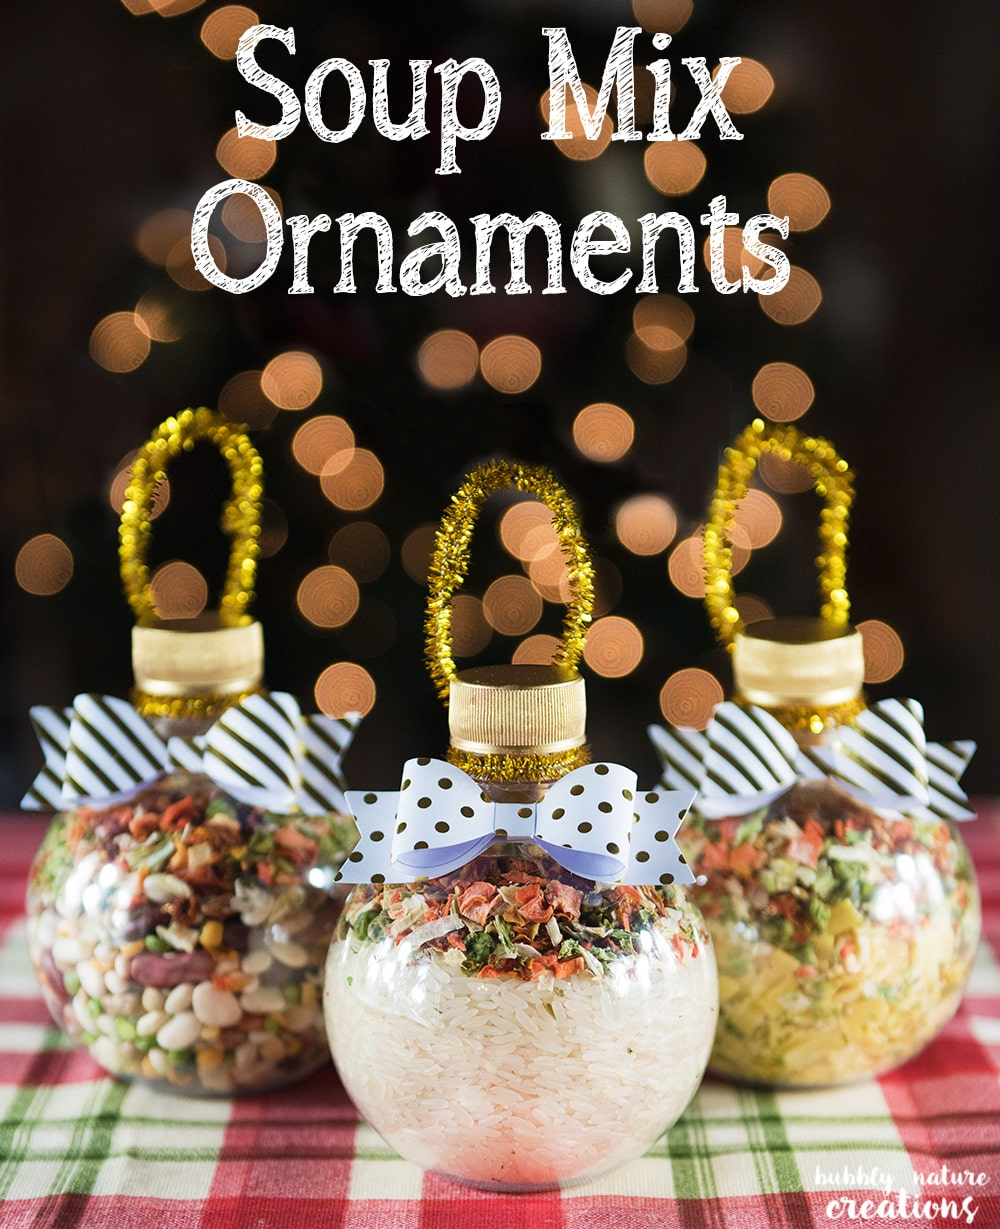 Soup Mix Ornaments